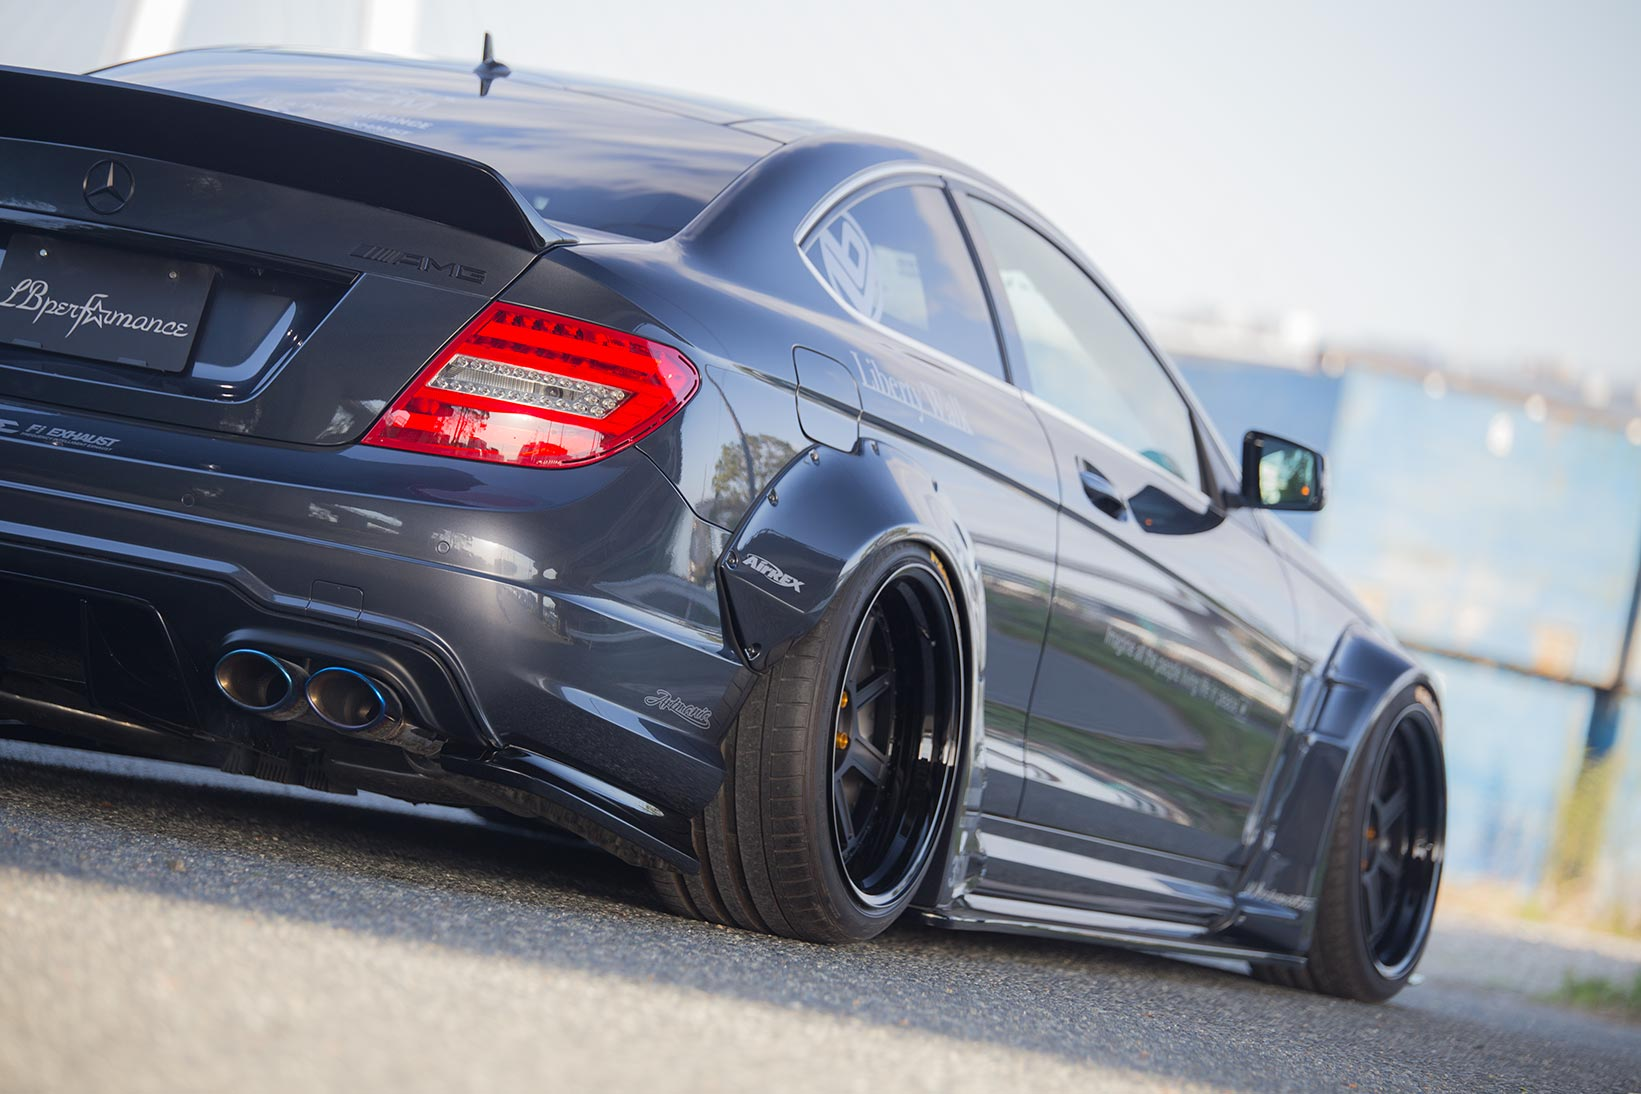 IMG_2678 LB-WORKS MERCEDES-BENZ C63 coupe & sedan  W204